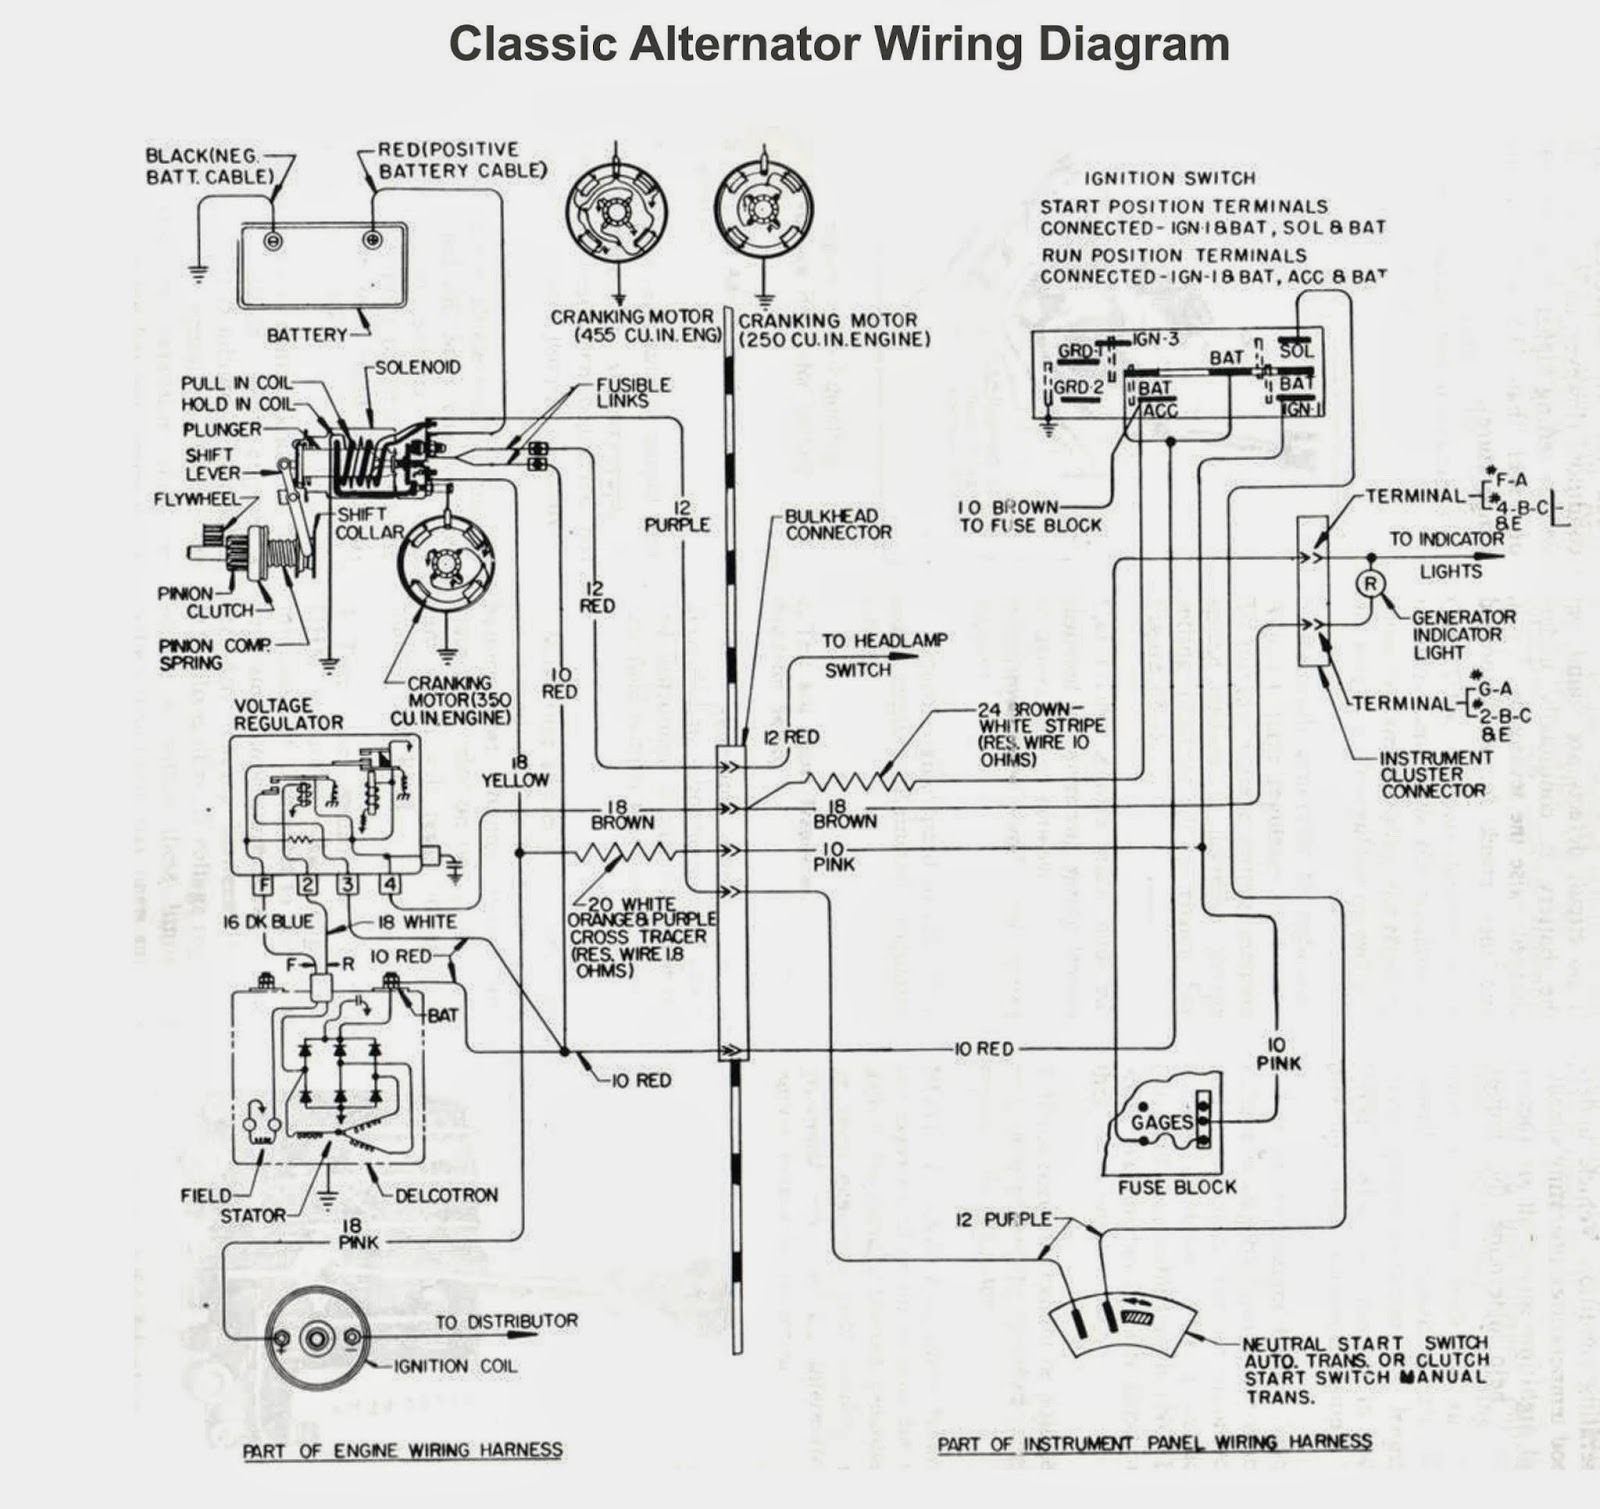 Wiring Diagram For Powell